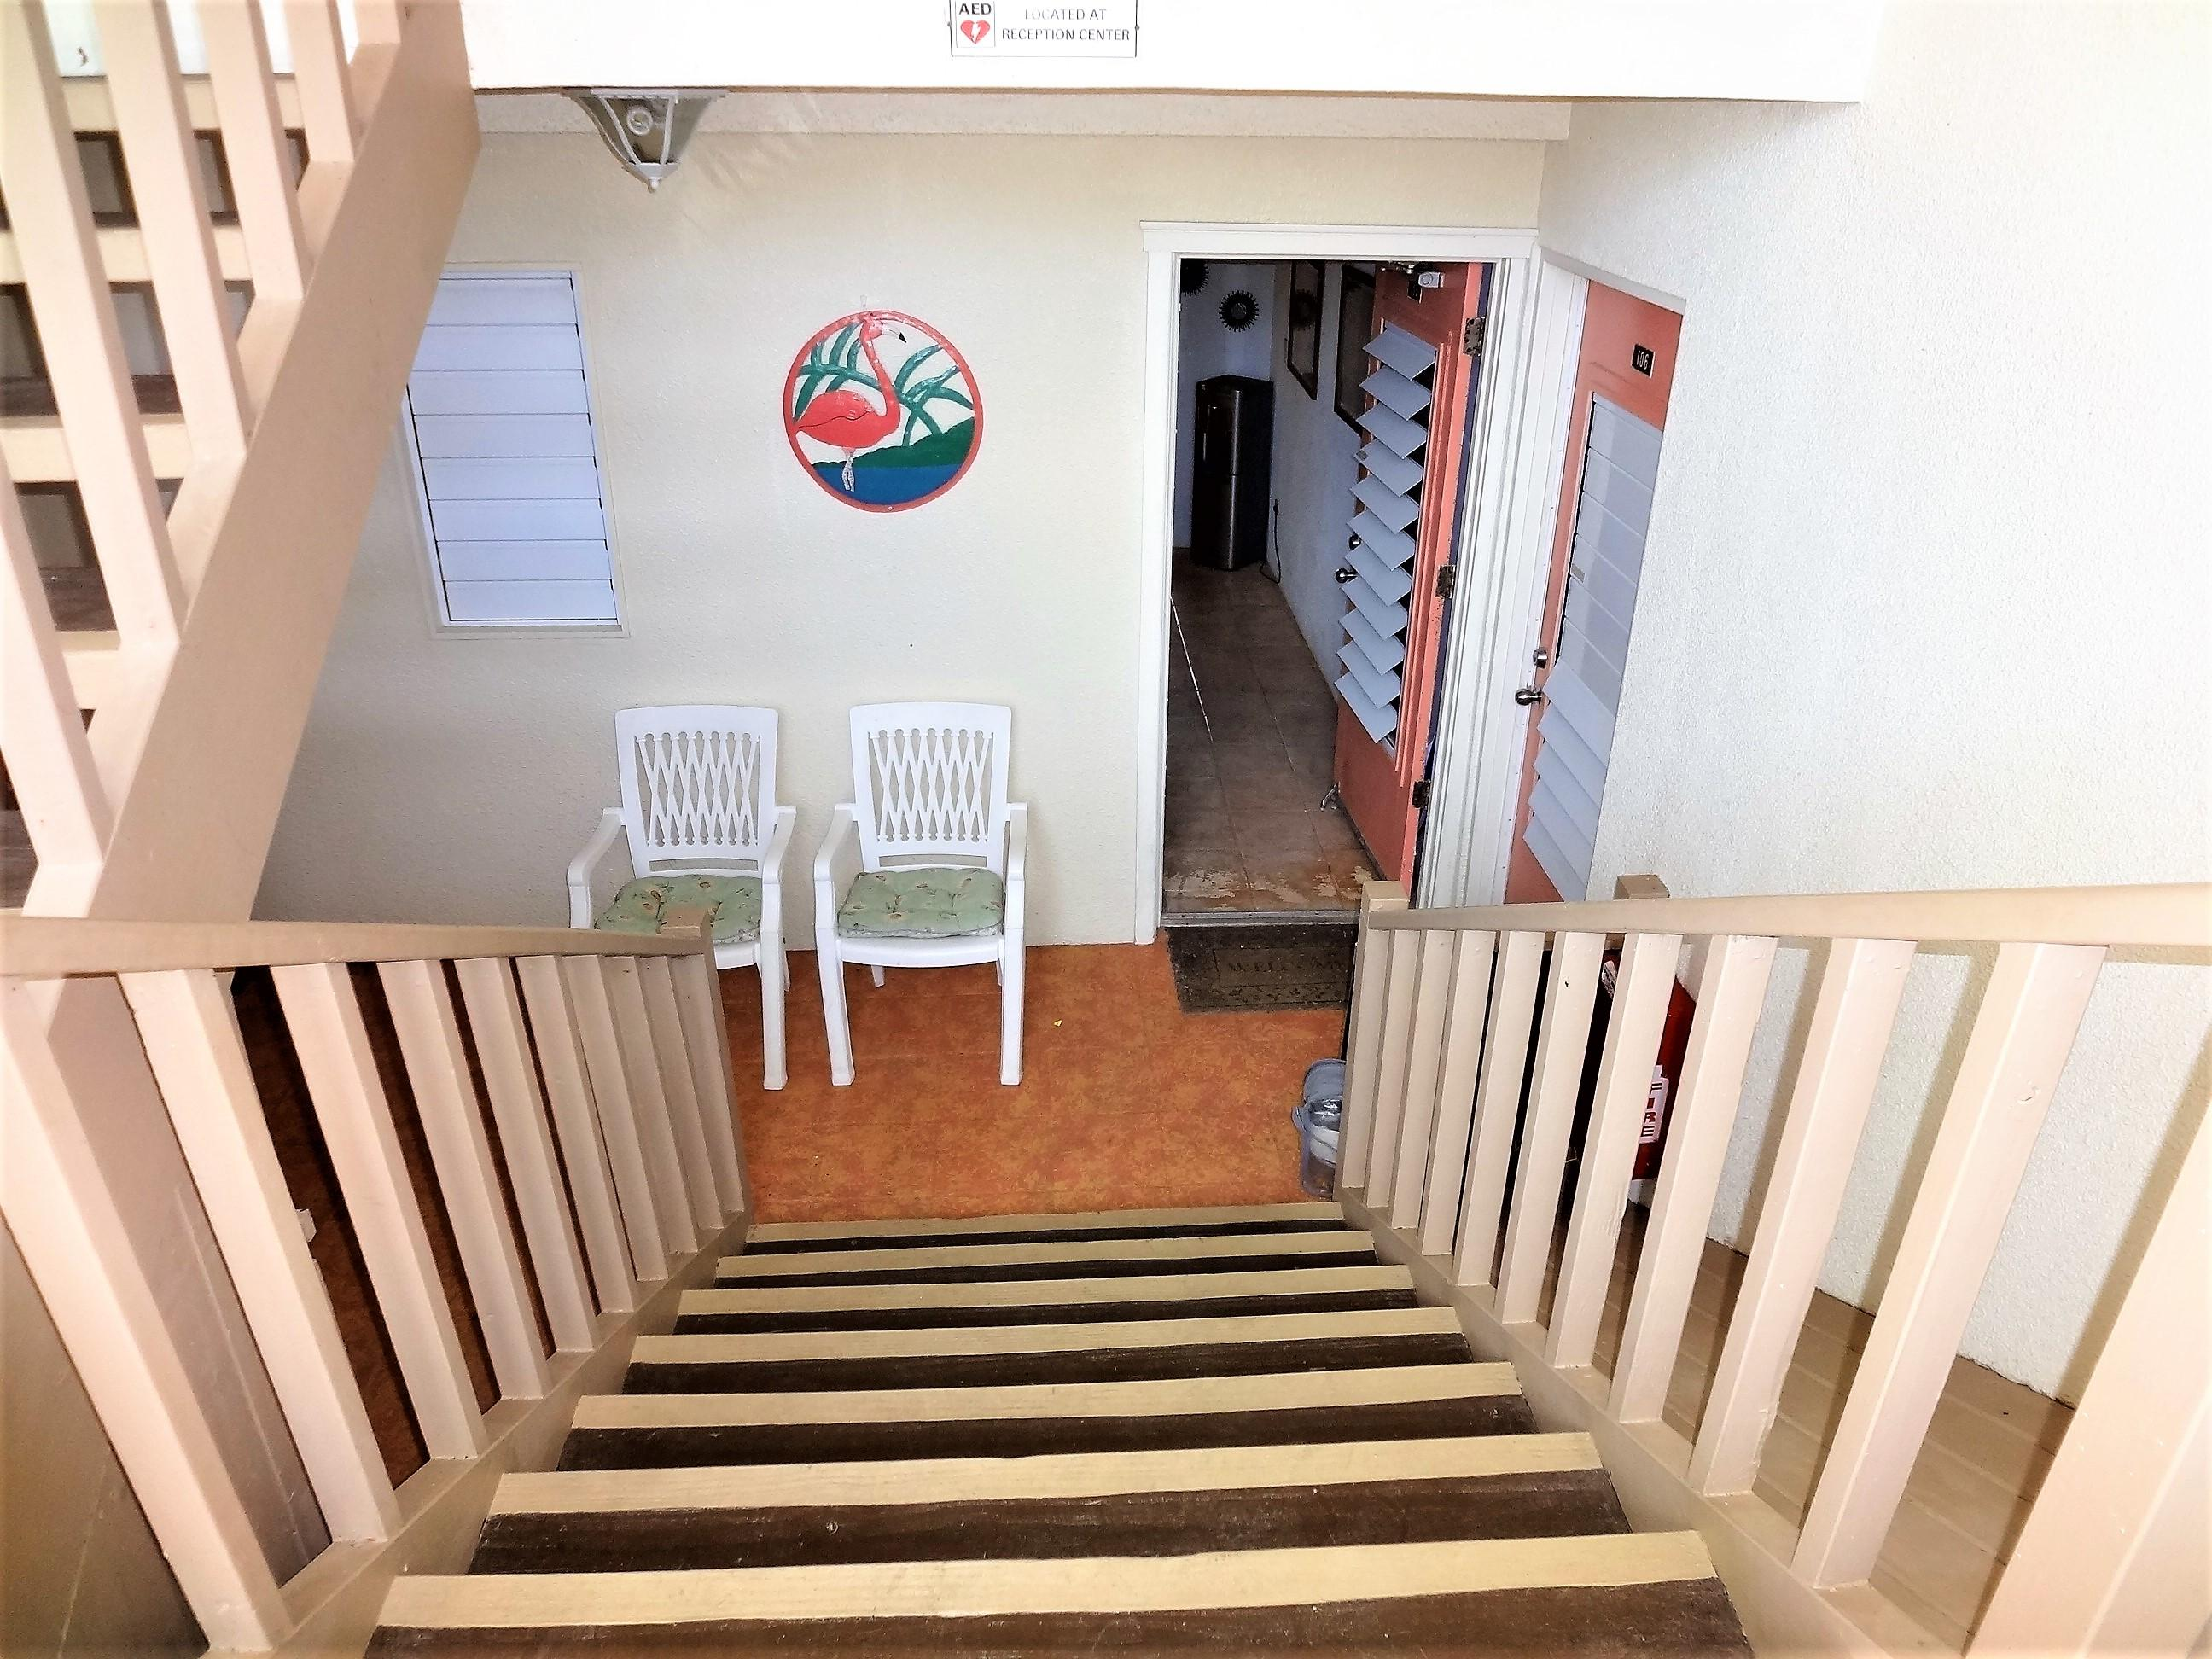 Stairs to Unit Entrance